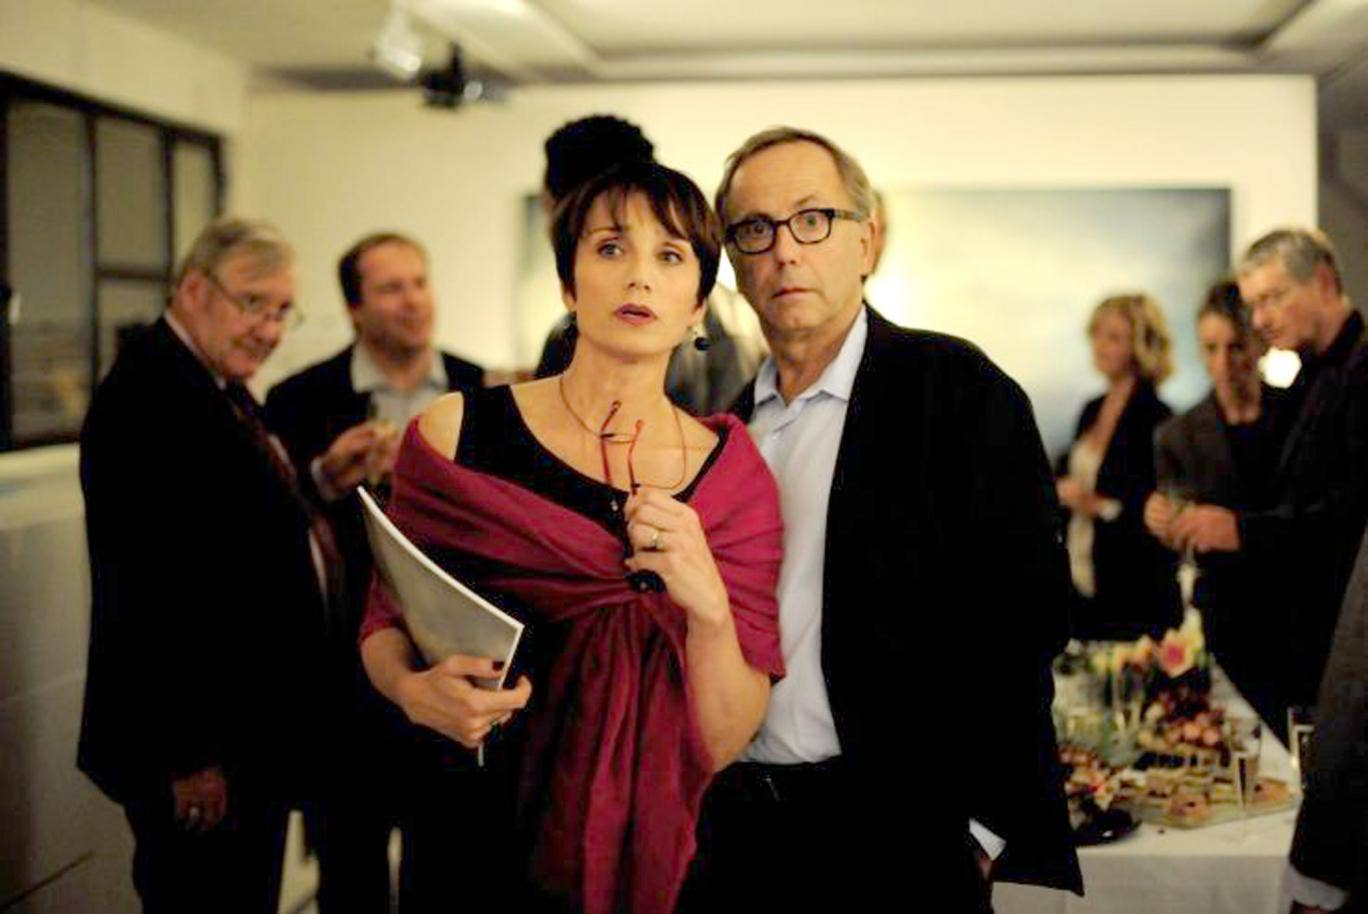 Kristin Scott Thomas and Fabrice Luchini in François Ozon's playful 'In the House'